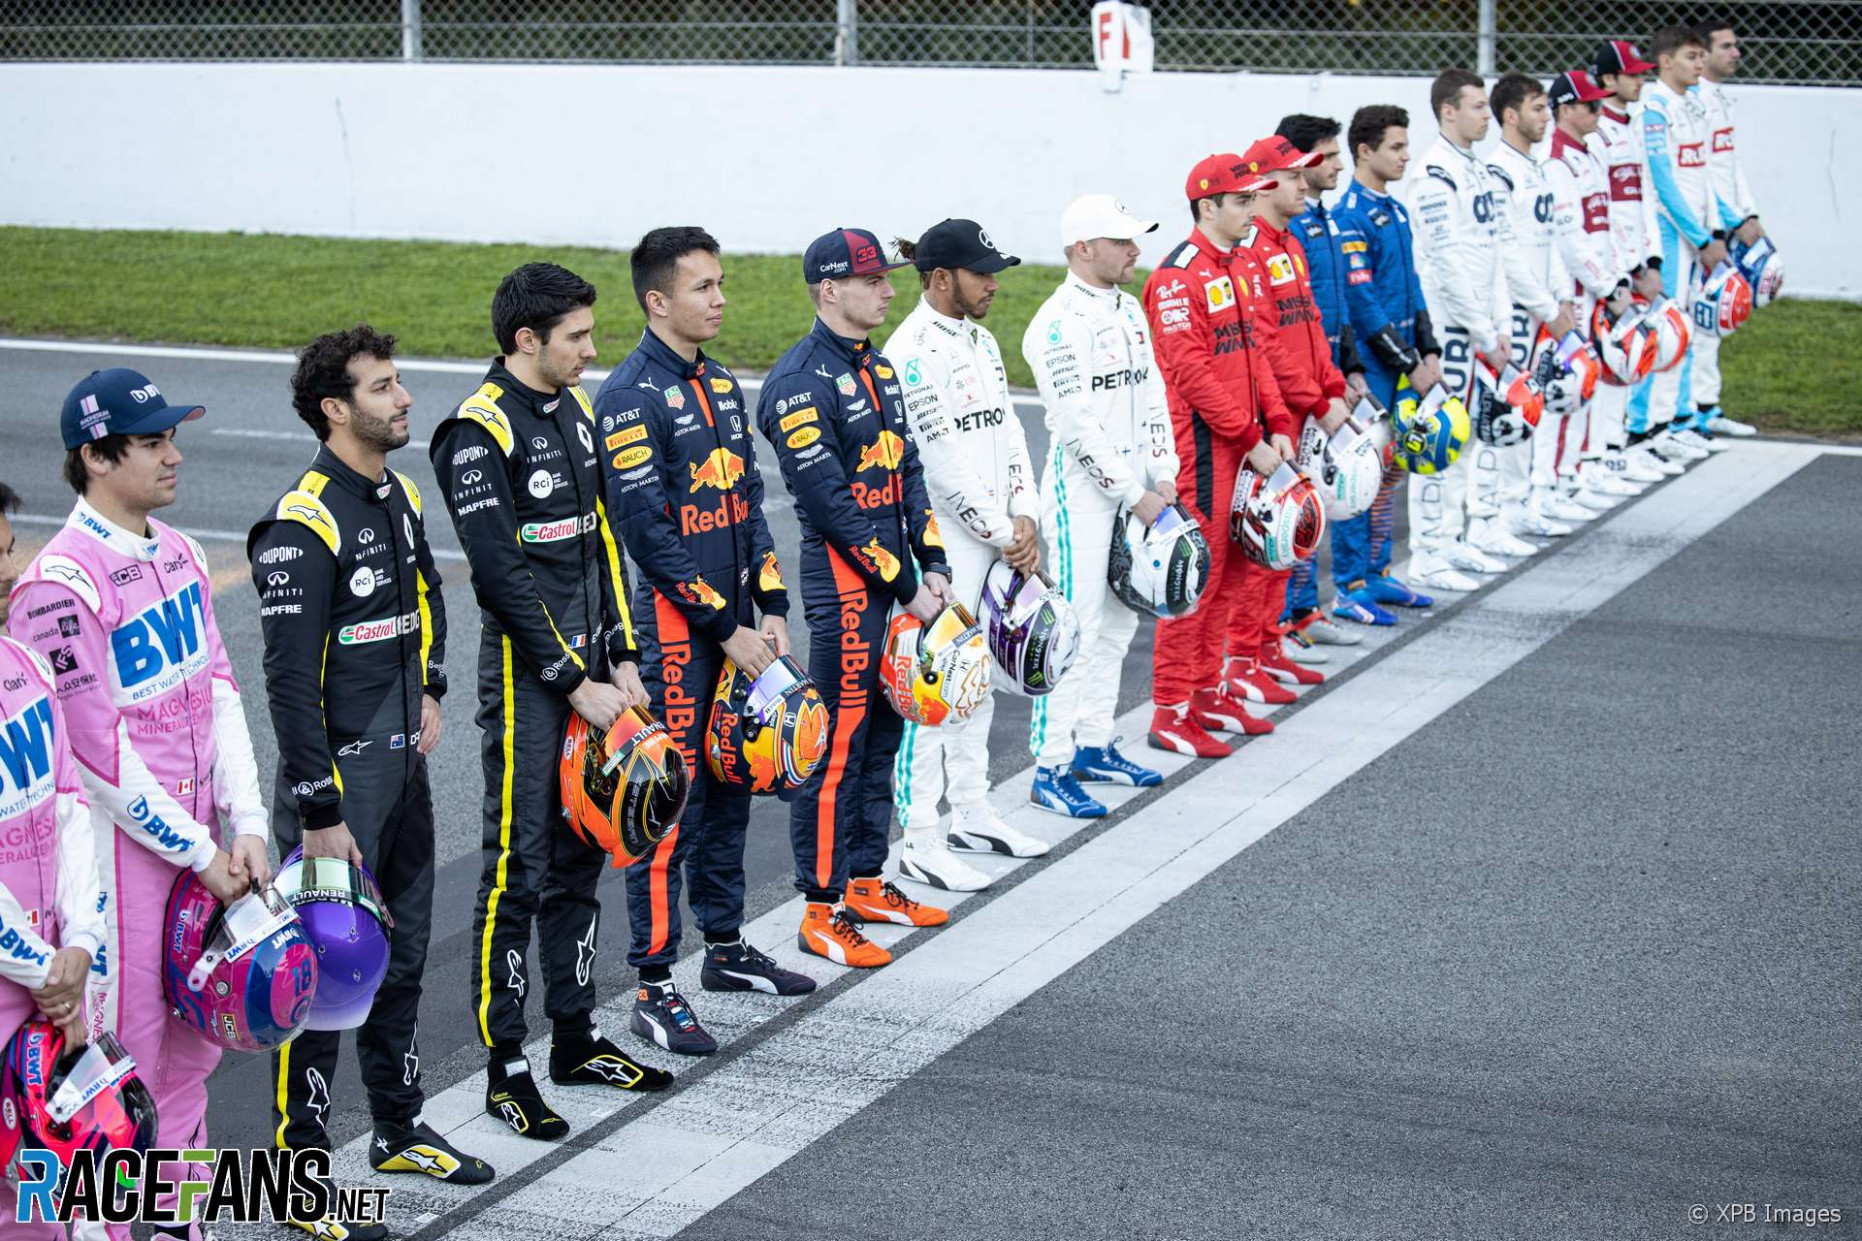 6 F6 driver salaries: Time to cap their million-dollar deals ..